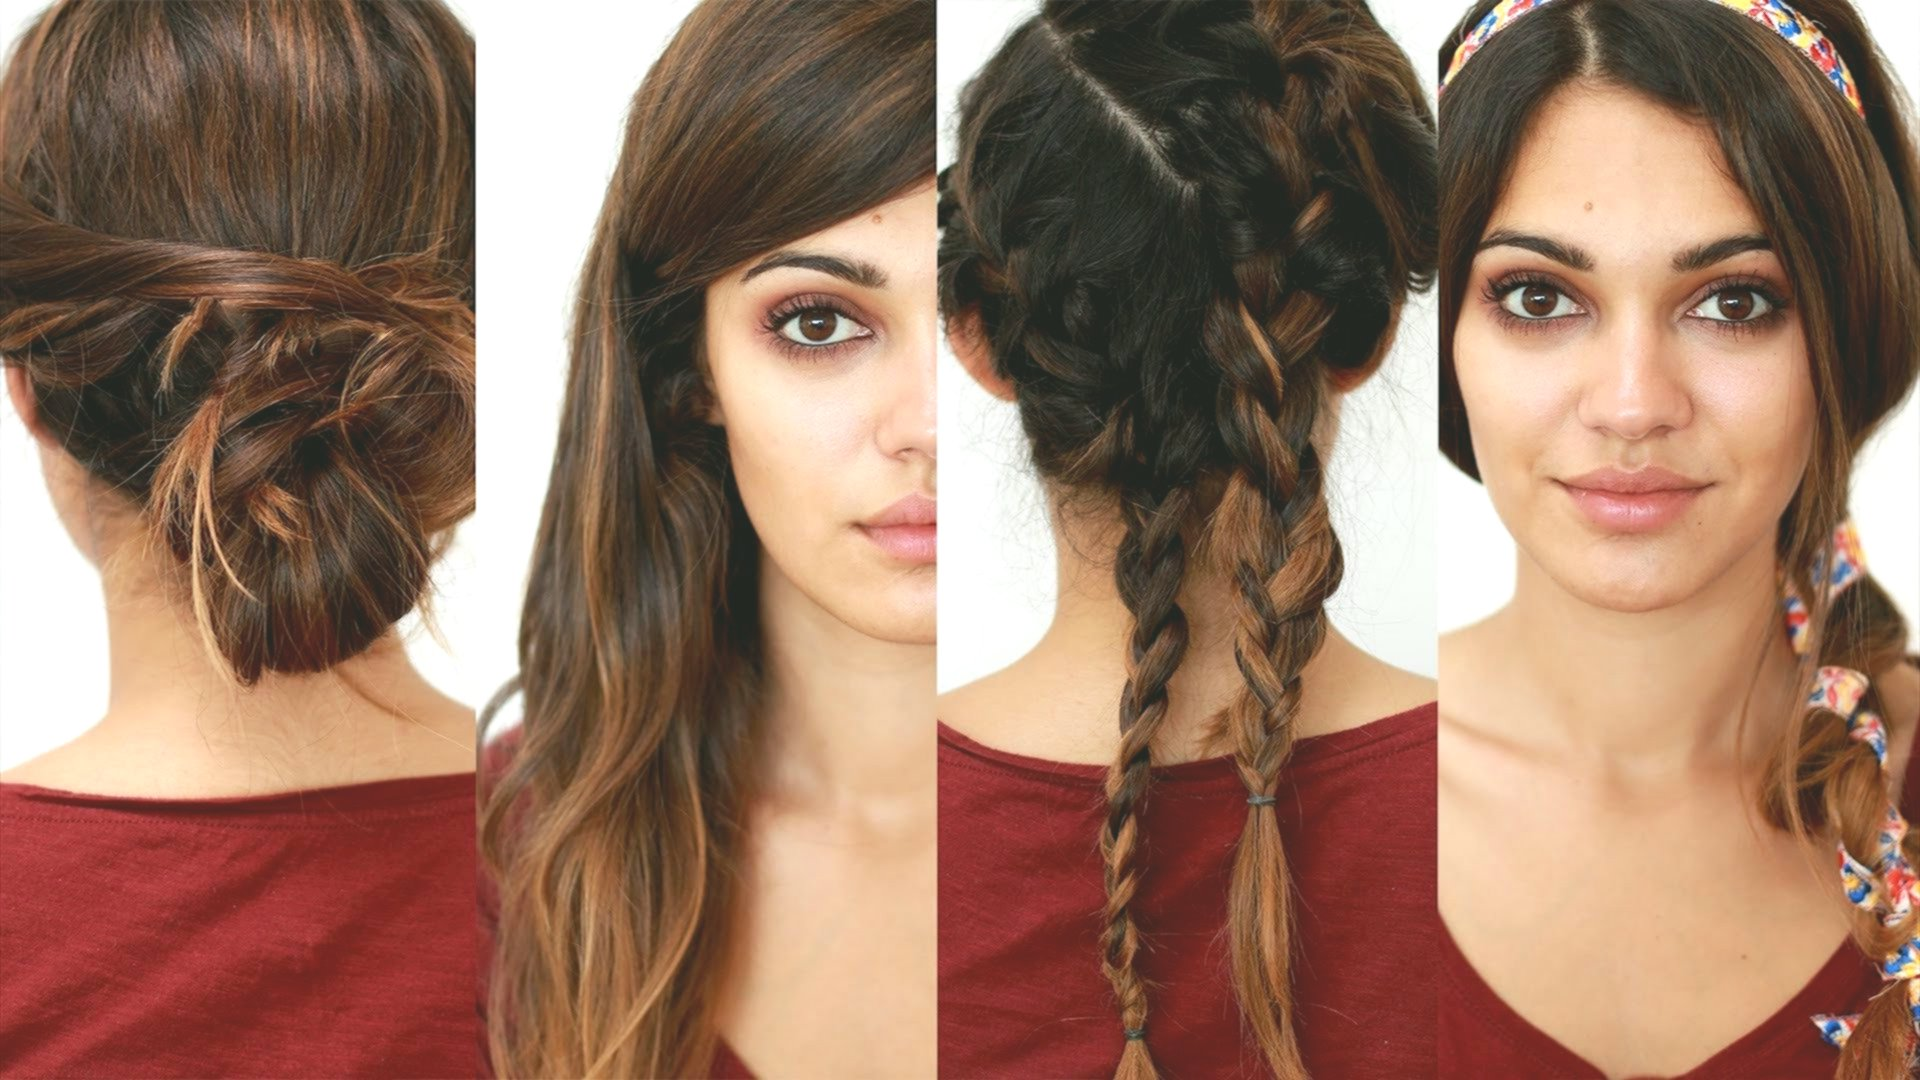 fantastic hairstyles for slim faces architecture-Wonderful Hairstyles For Narrow Faces Decoration